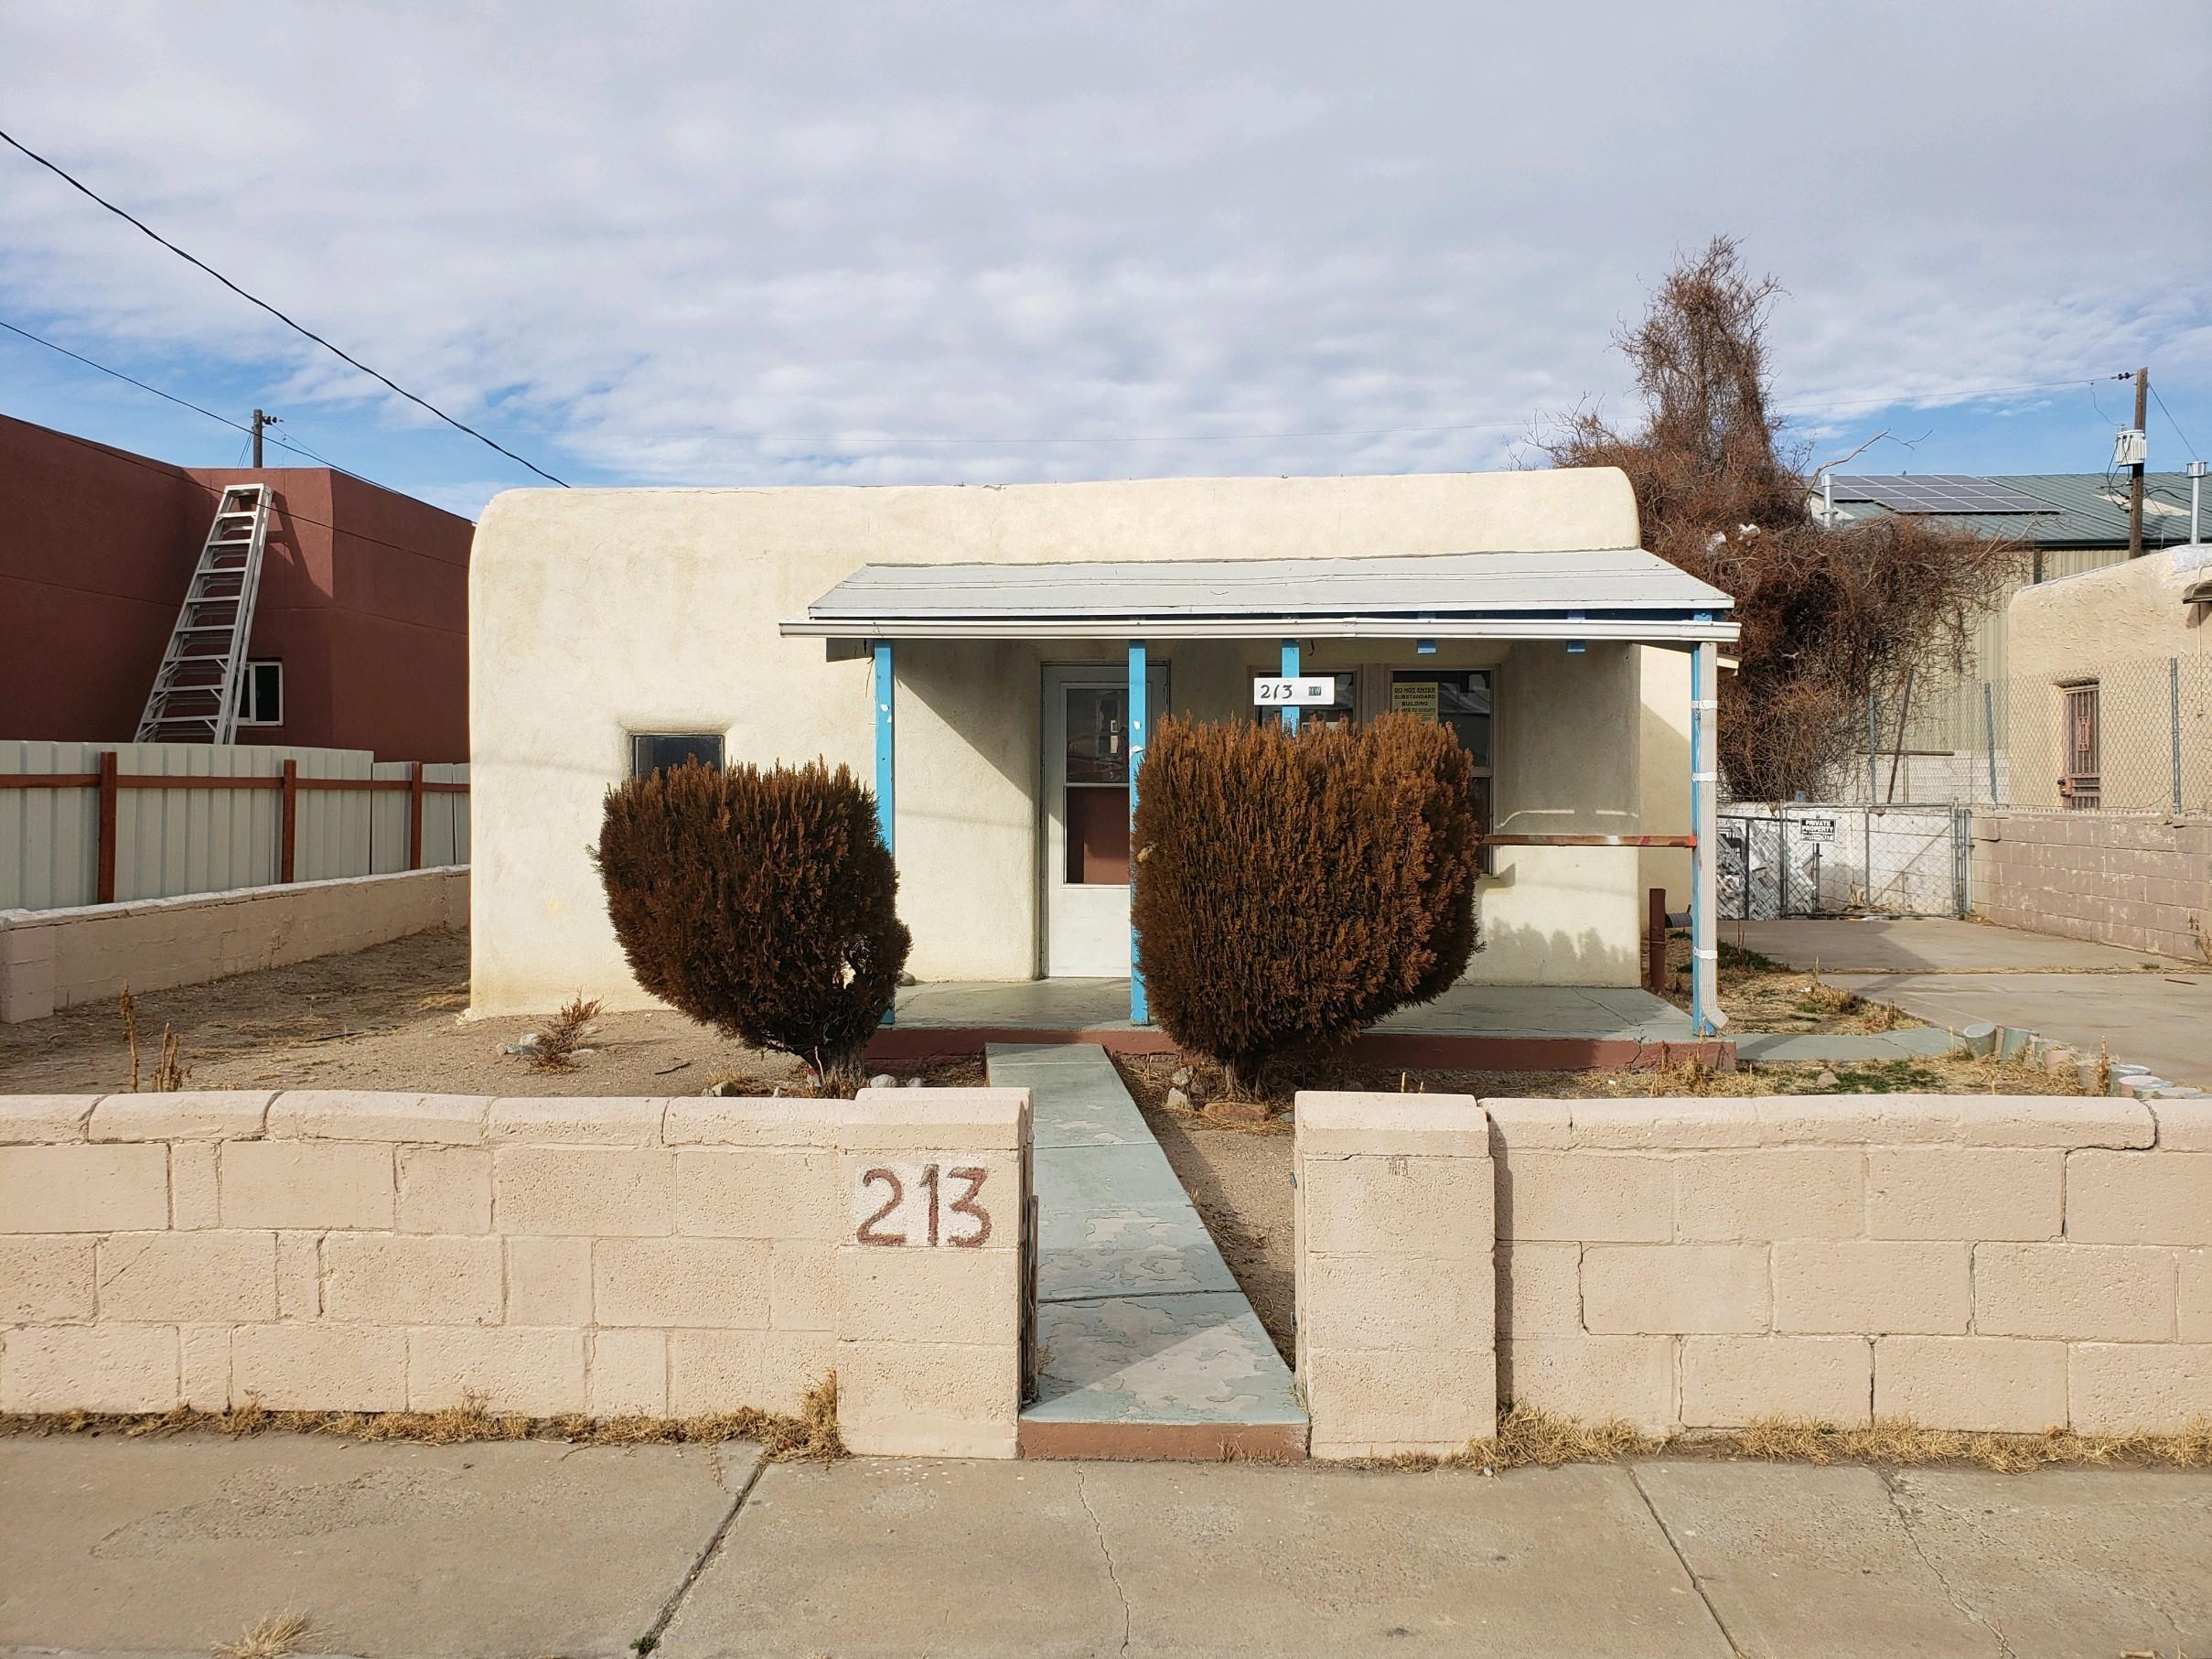 Bring your investor buyers! Home is being sold AS IS. Great location... Home needs some elbow grease and TLC.